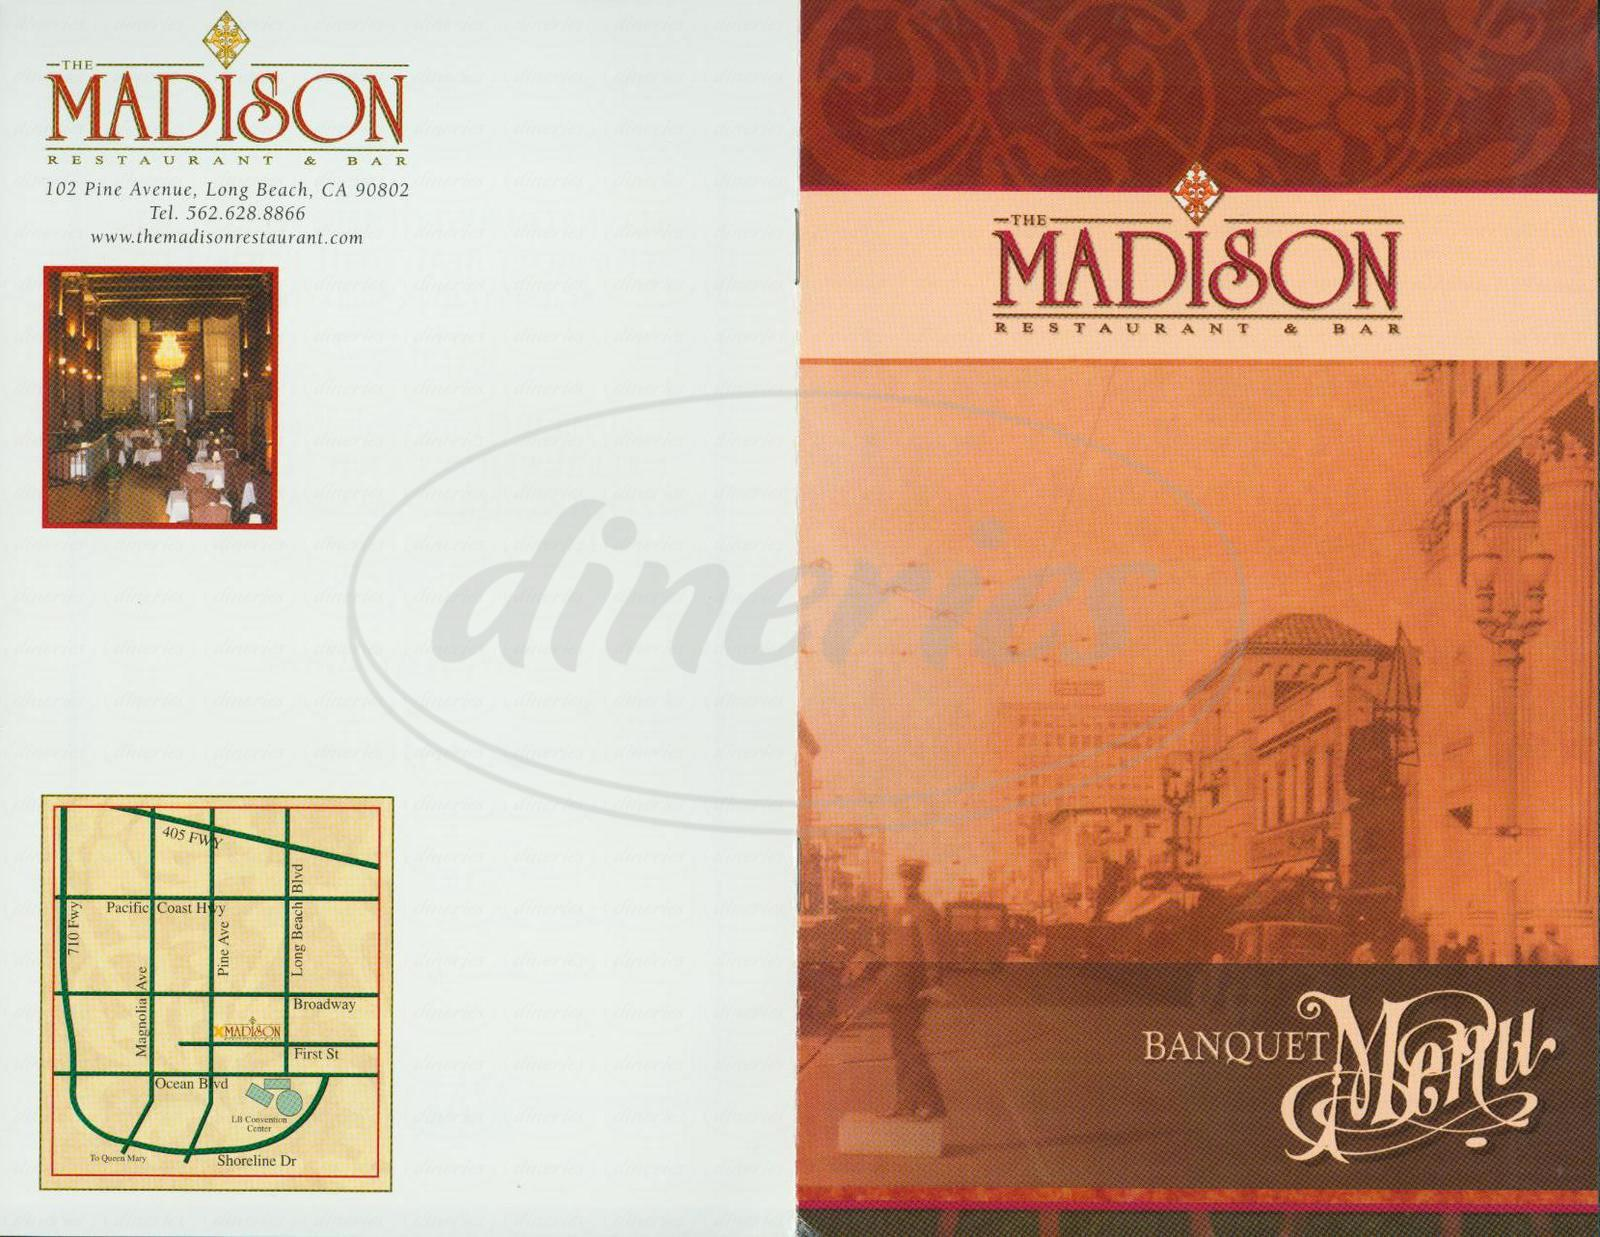 menu for The Madison Restaurant